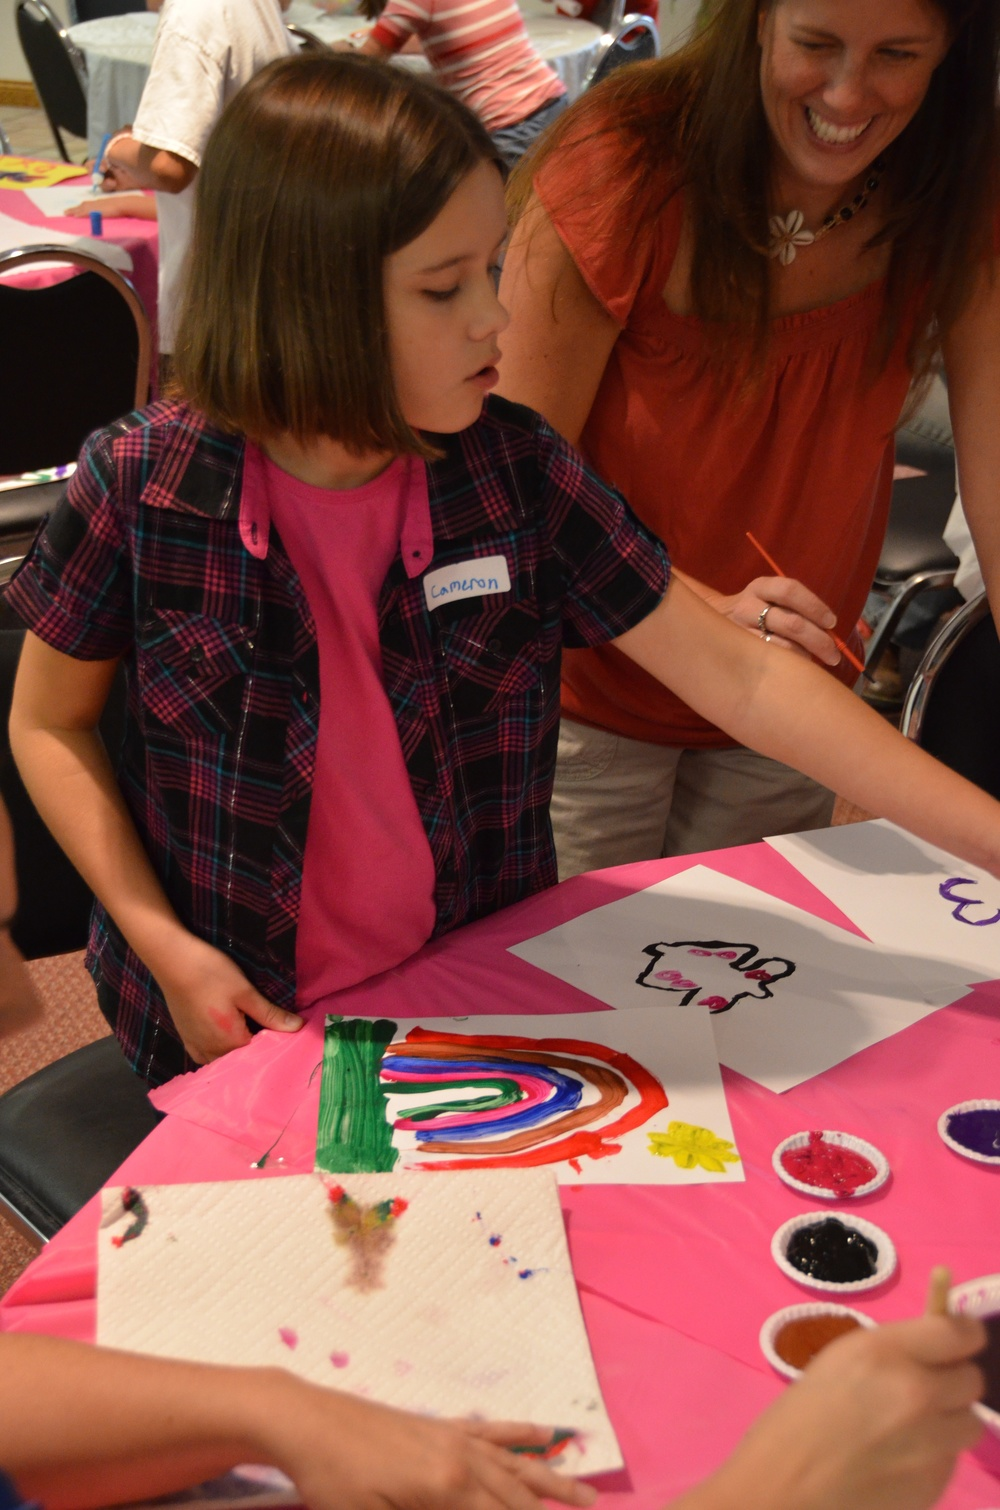 KIds ARt Church 9 12 2011   95208.jpg